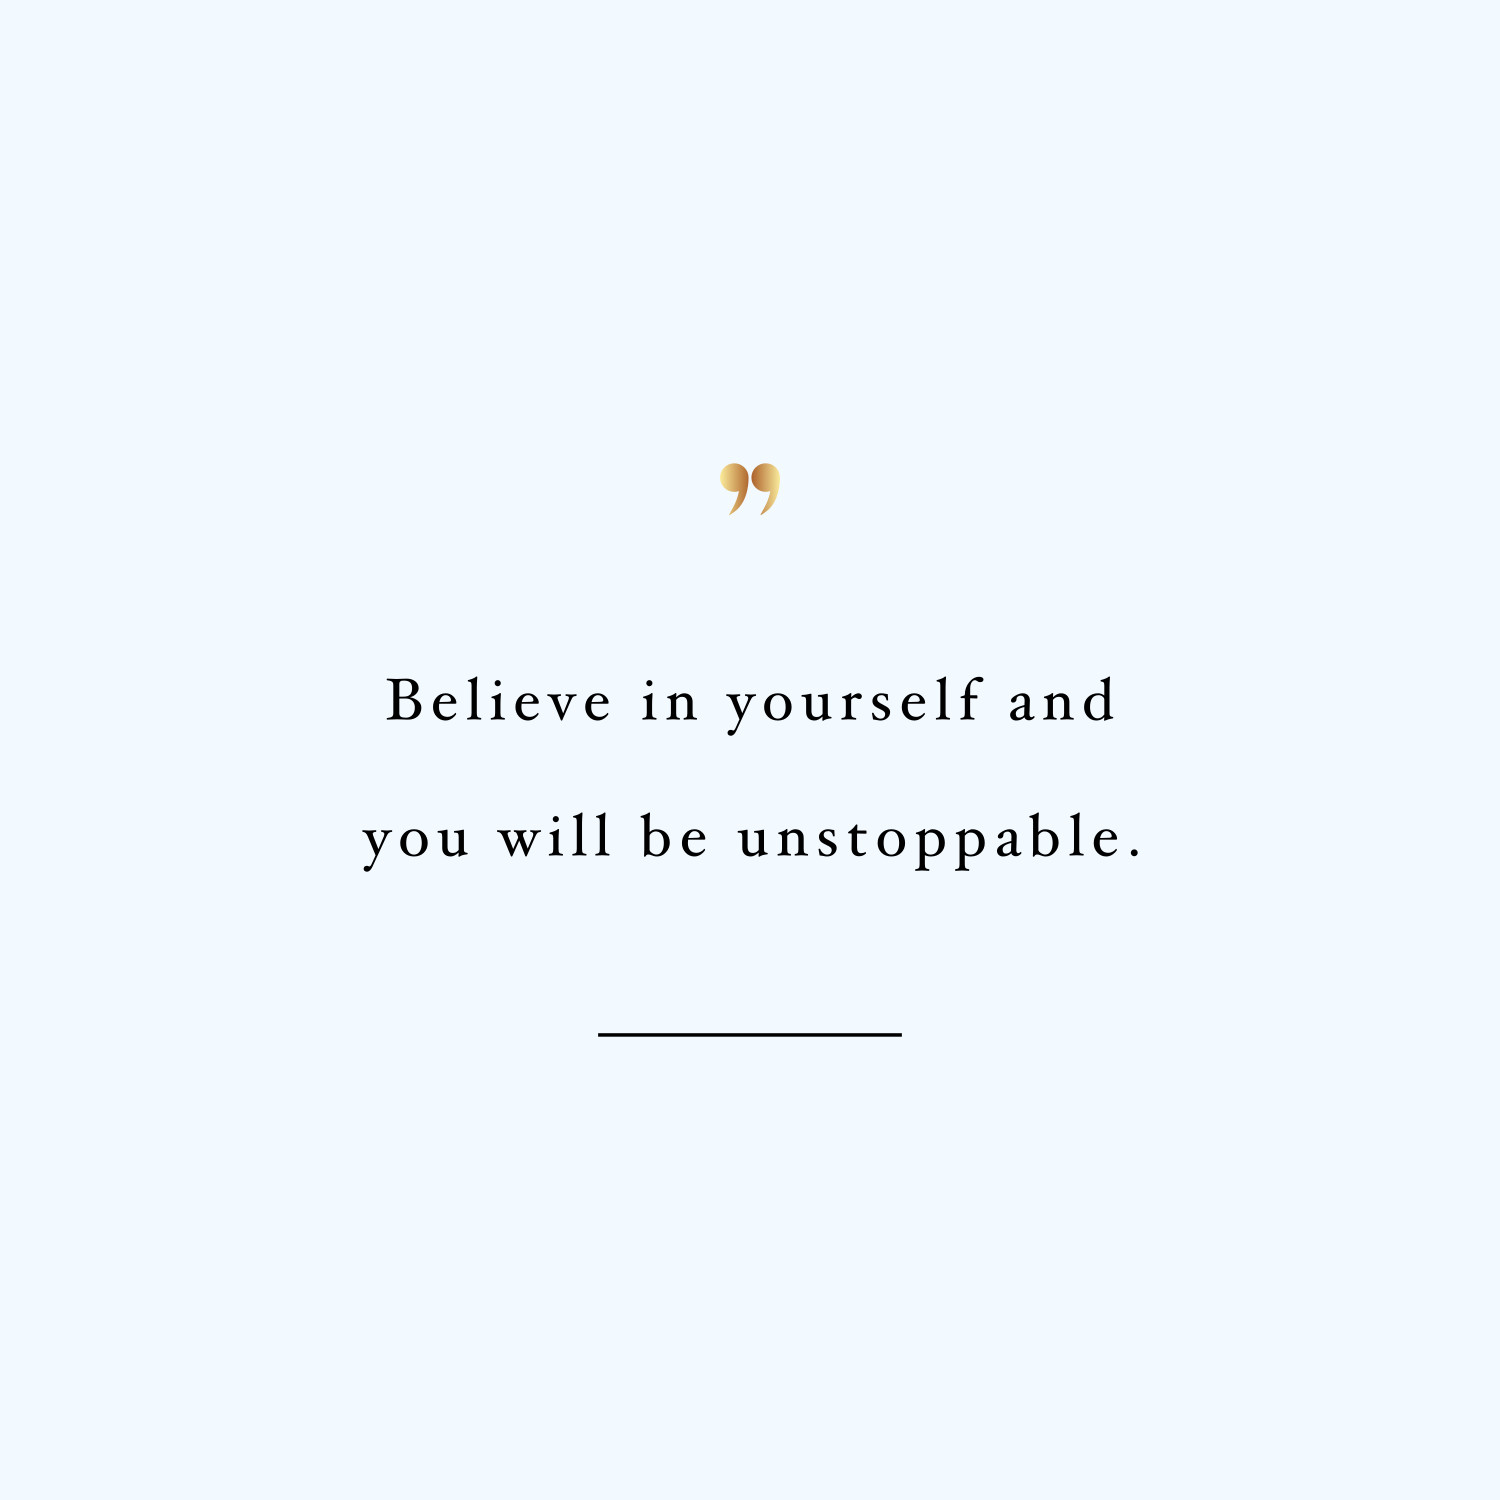 Believe in yourself! Browse our collection of inspirational workout quotes and get instant exercise and fitness motivation. Transform positive thoughts into positive actions and get fit, healthy and happy! https://www.spotebi.com/workout-motivation/fitness-motivation-believe-in-yourself/